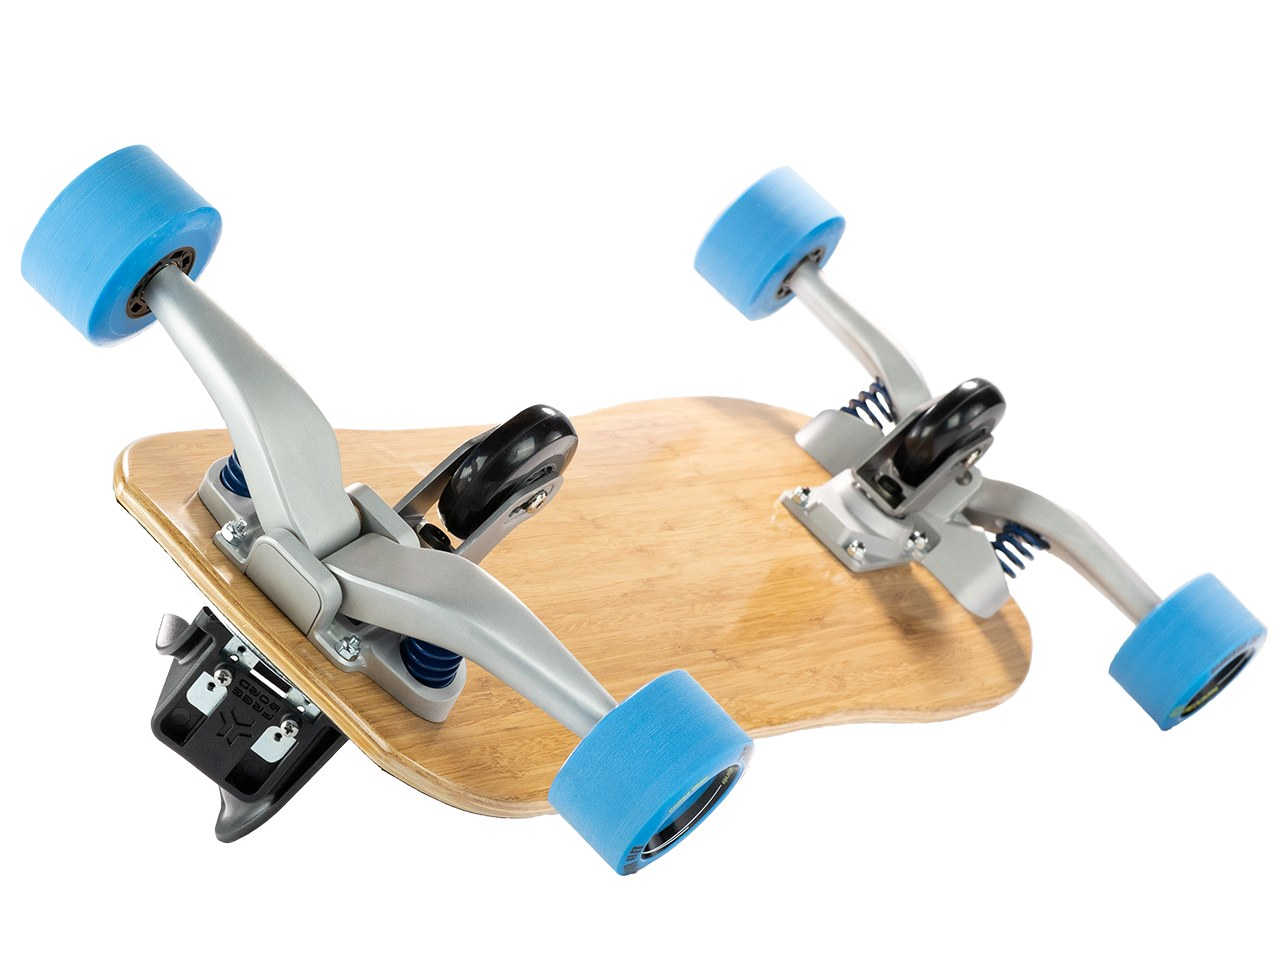 Freebord 5-X - The Next Generation Freebord - Snowboard The Streets - Freebord UK